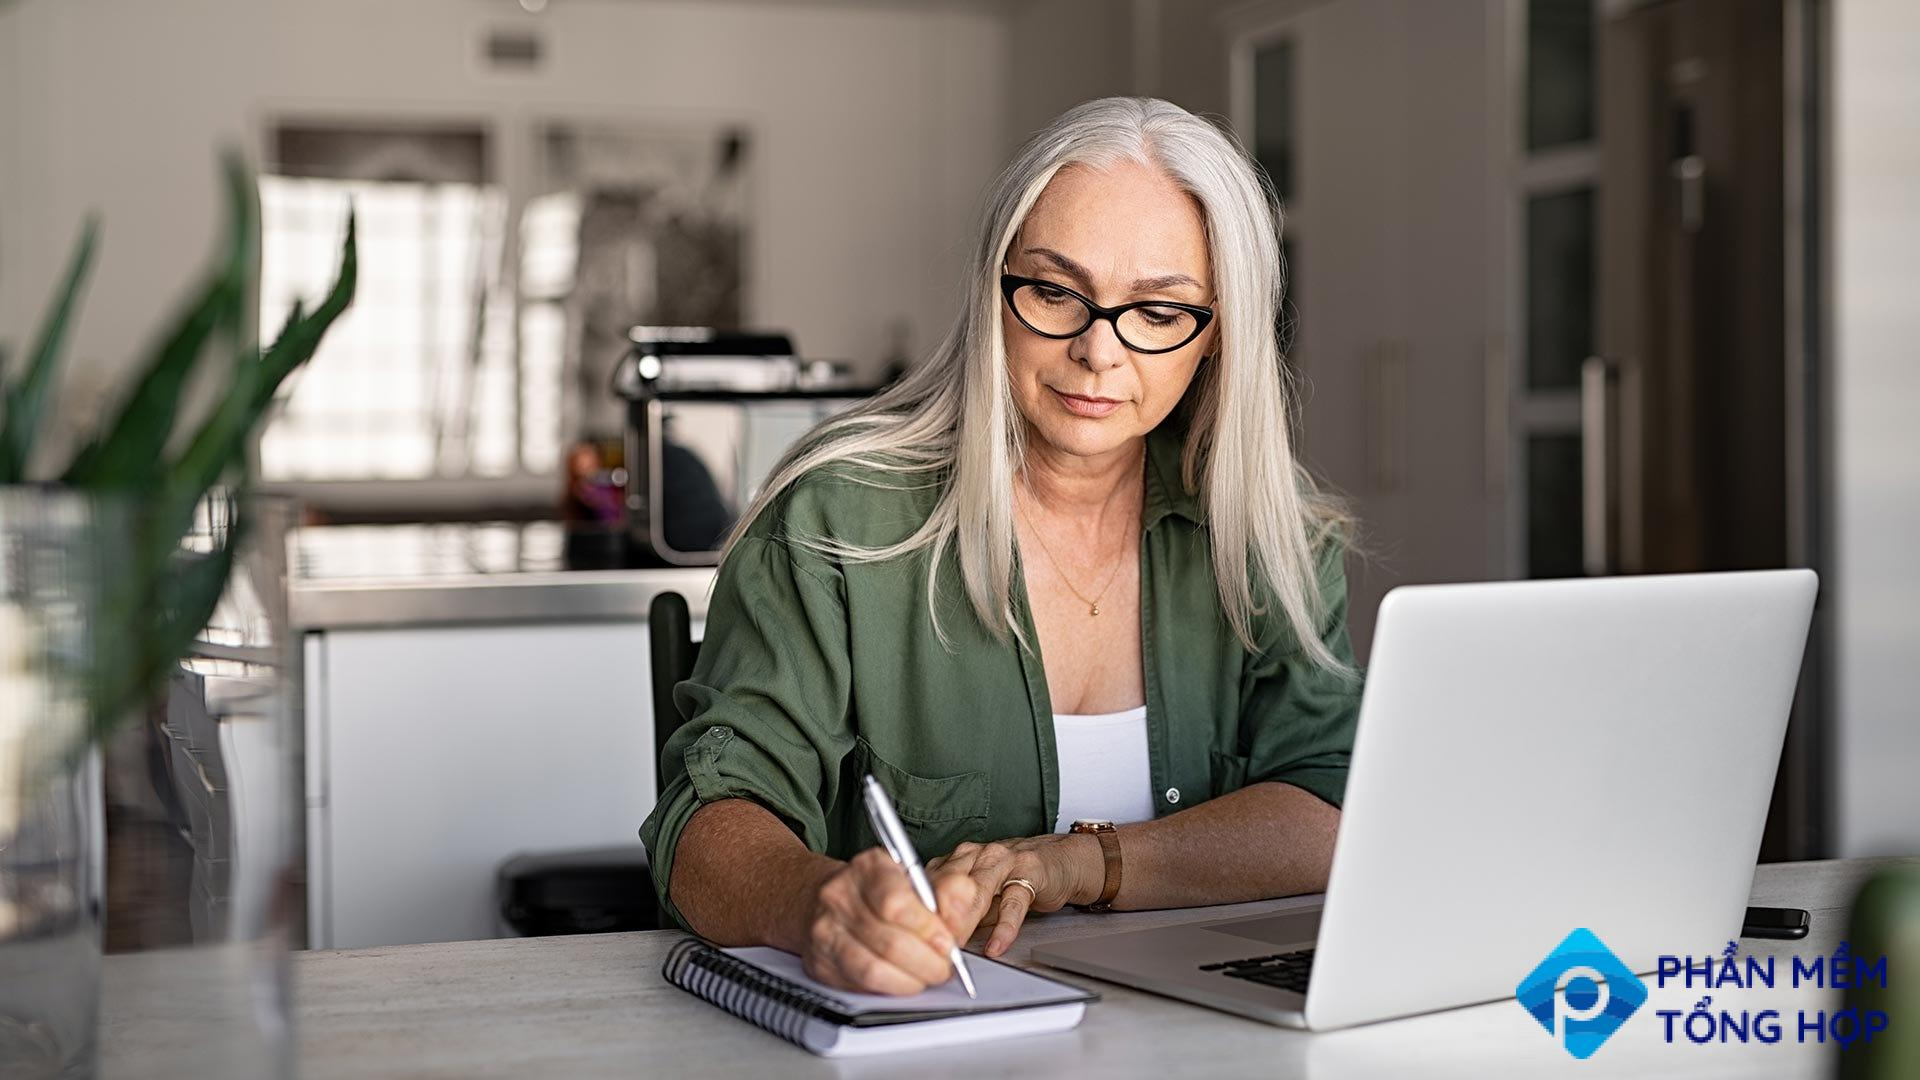 A woman writing down a checklist to help her focus.